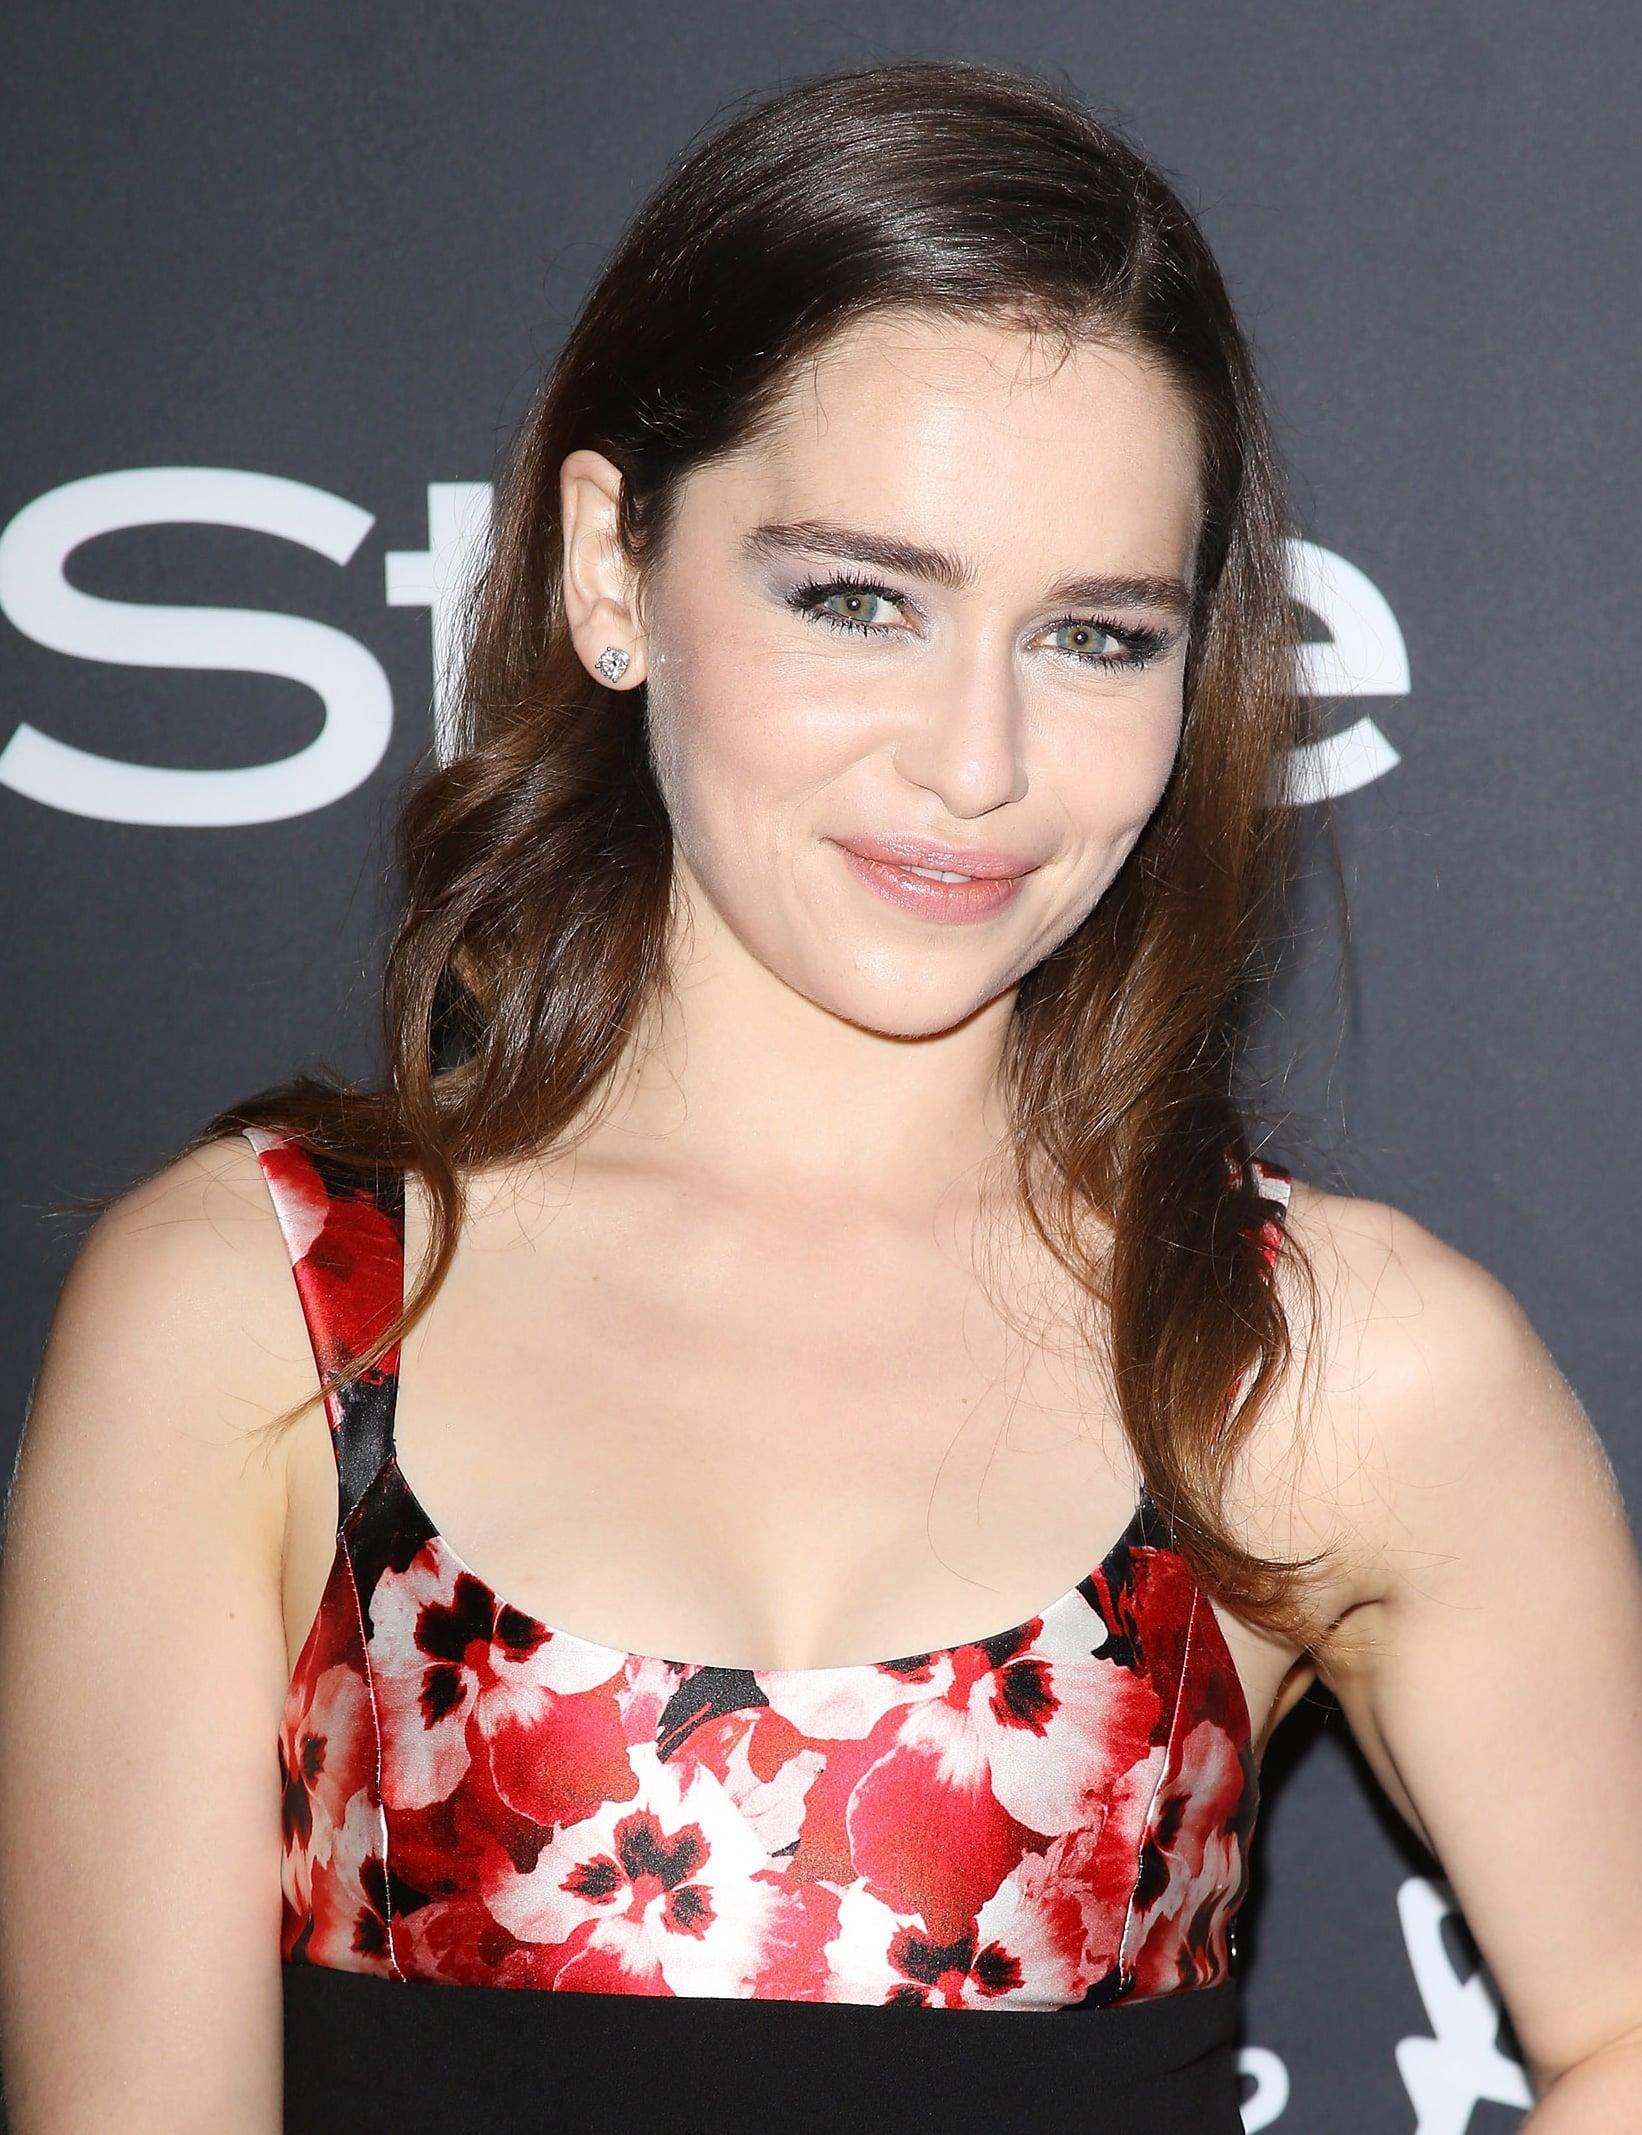 Emilia Clarke went with tousled waves and a sexy smoky eye for the InStyle party.